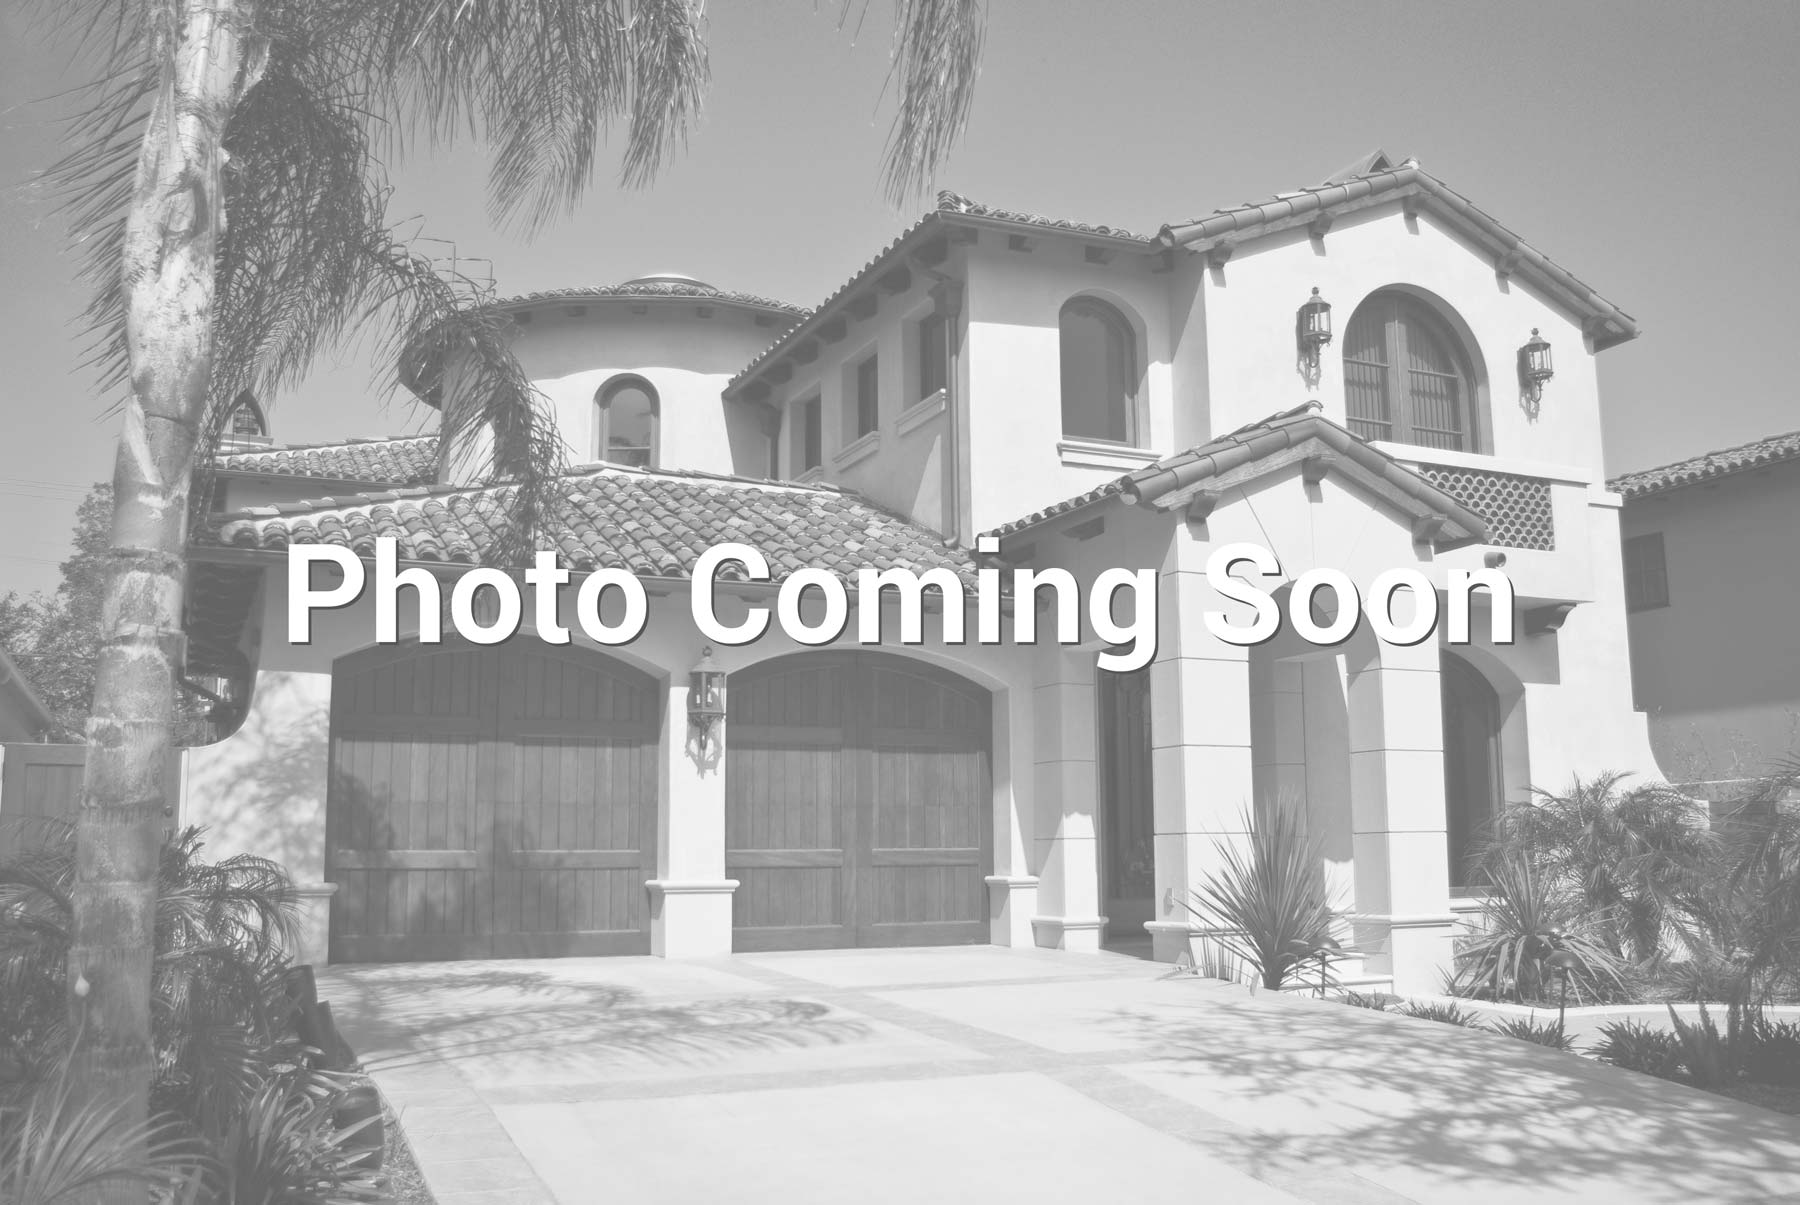 $2,247,000 - 4Br/5Ba - Home for Sale in Firerock Parcel D, Fountain Hills